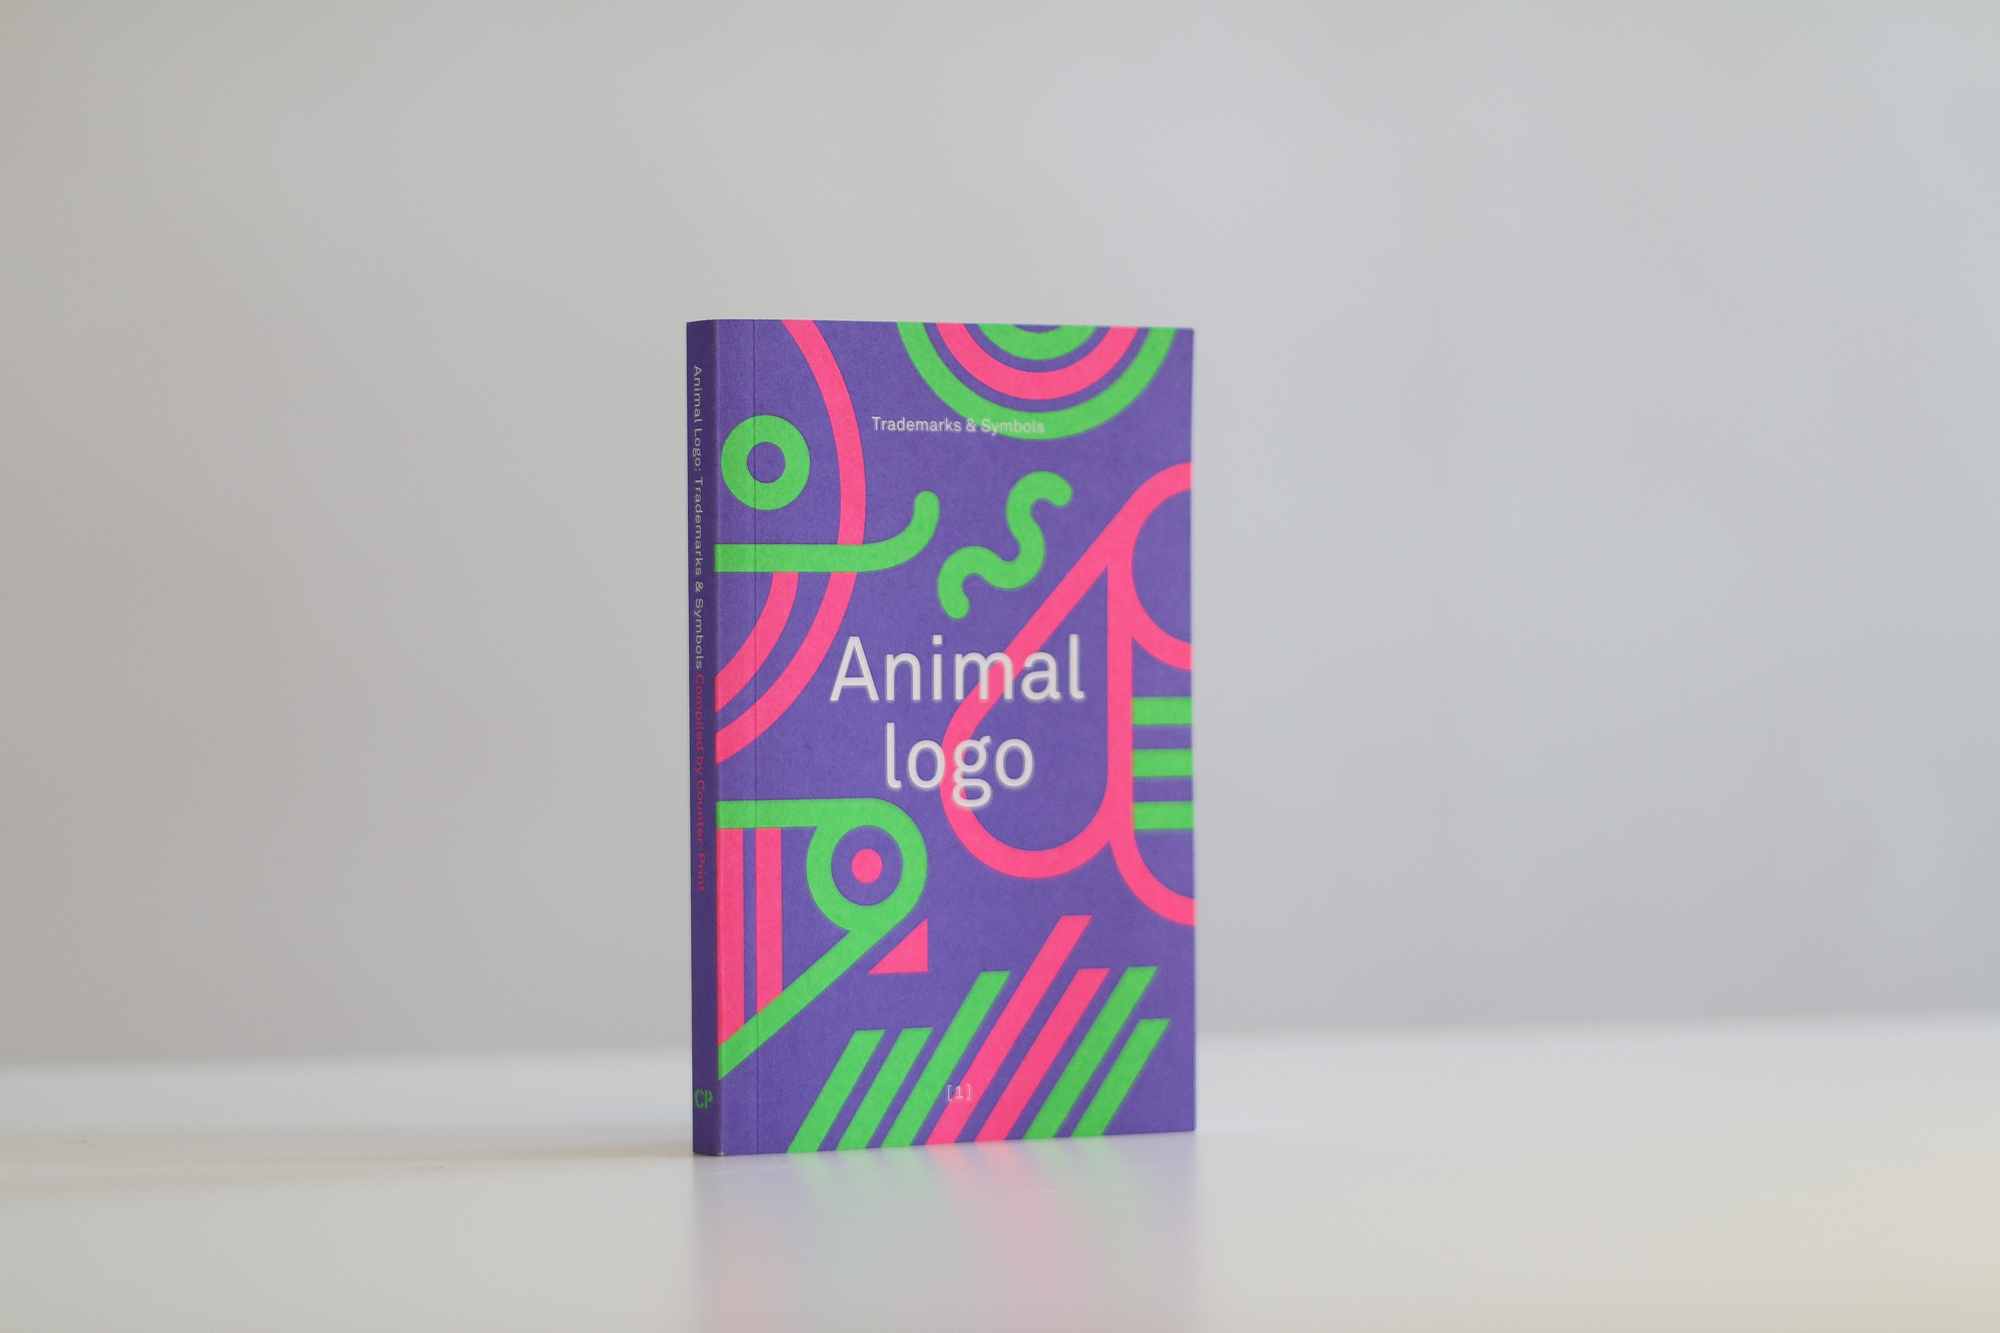 Animal logo by Counter-Print.co.uk